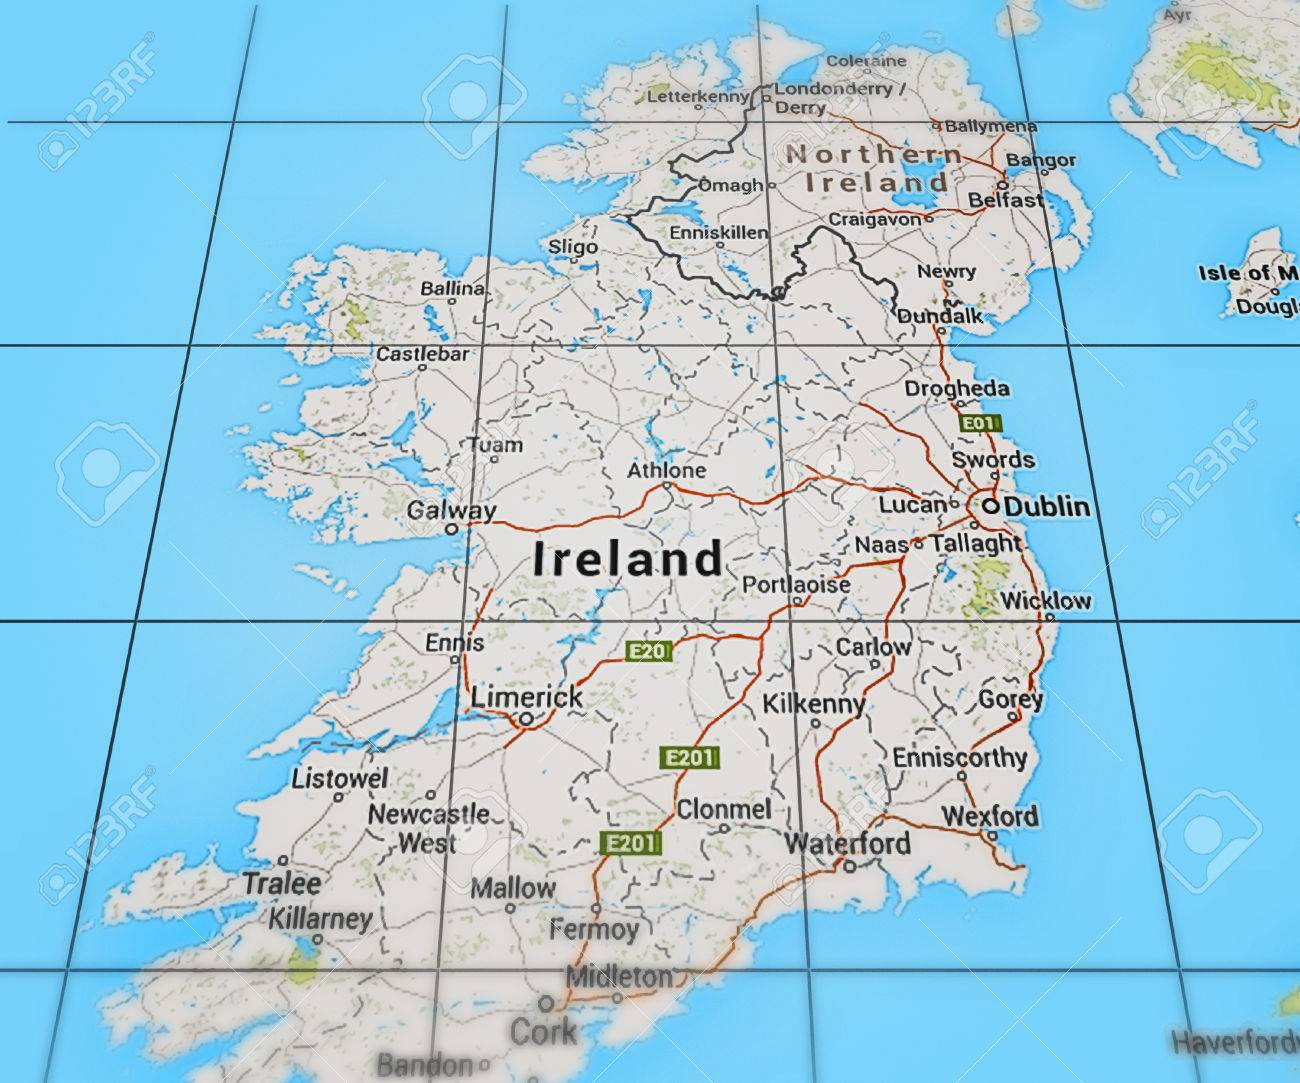 Ireland On Map Stock Photo Picture And Royalty Free Image Image - Ireland on map